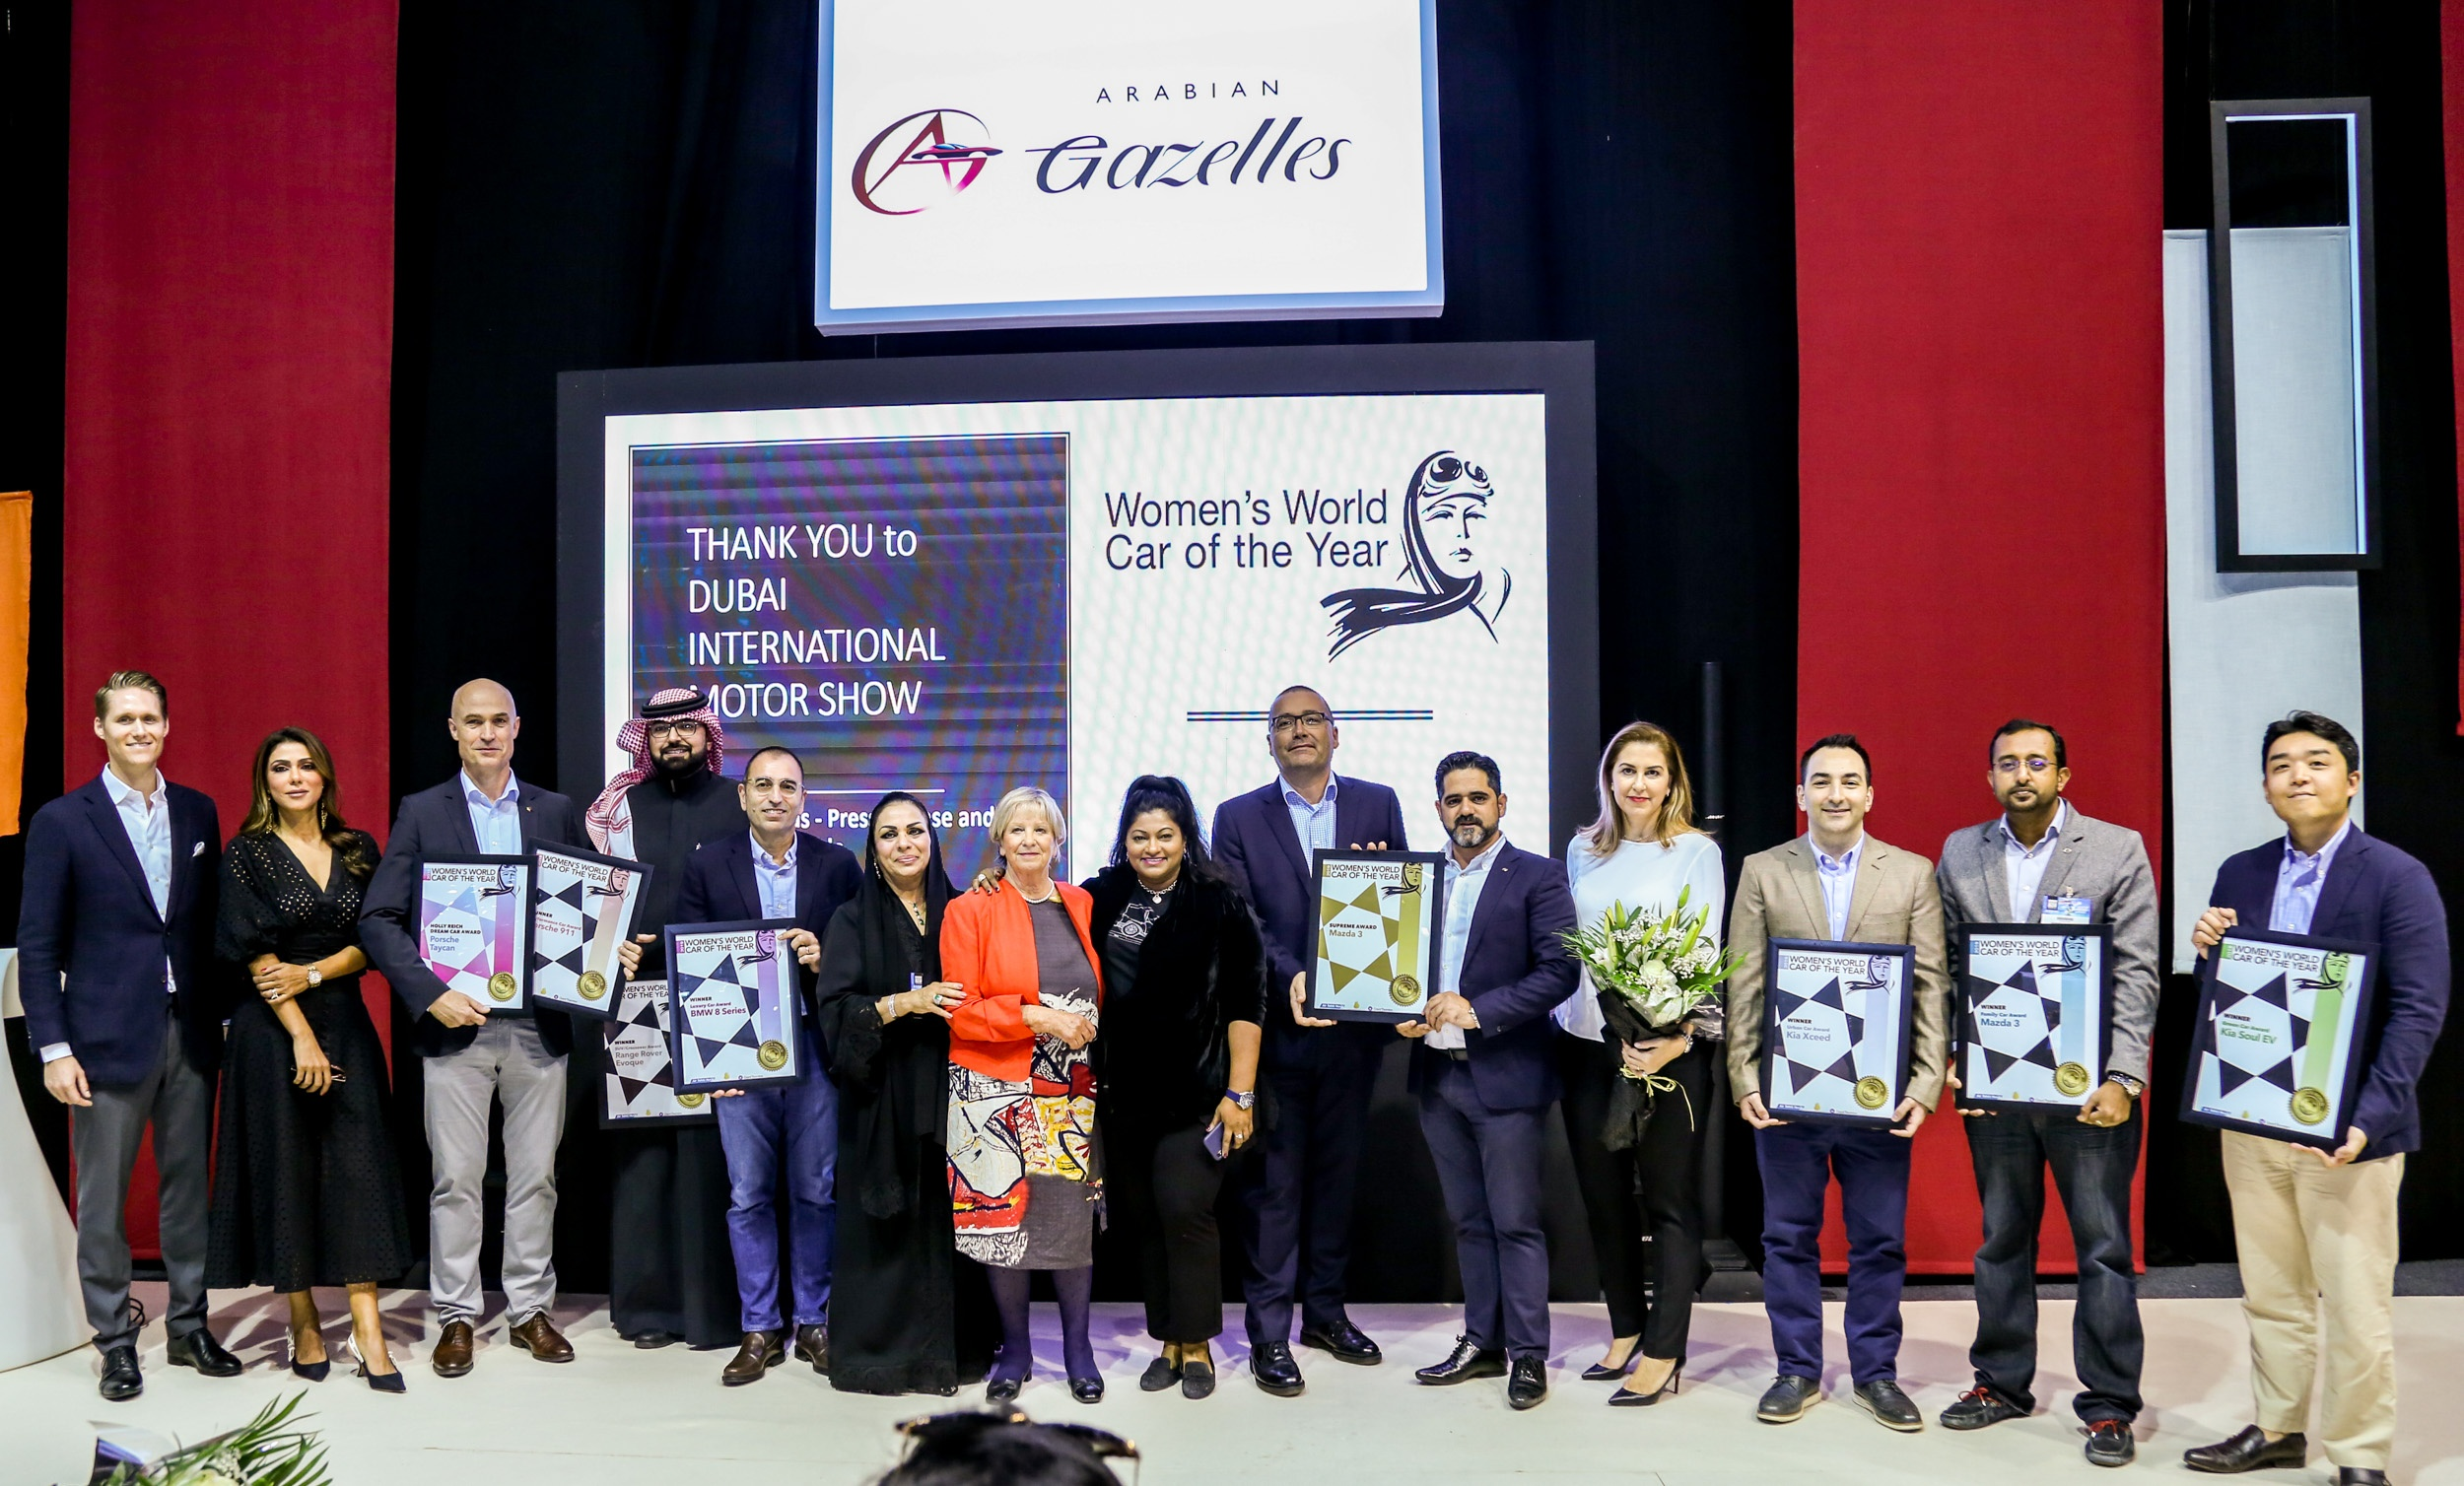 Women's World Car of the Year 2019 Awards Announced at Dubai International Motor Show